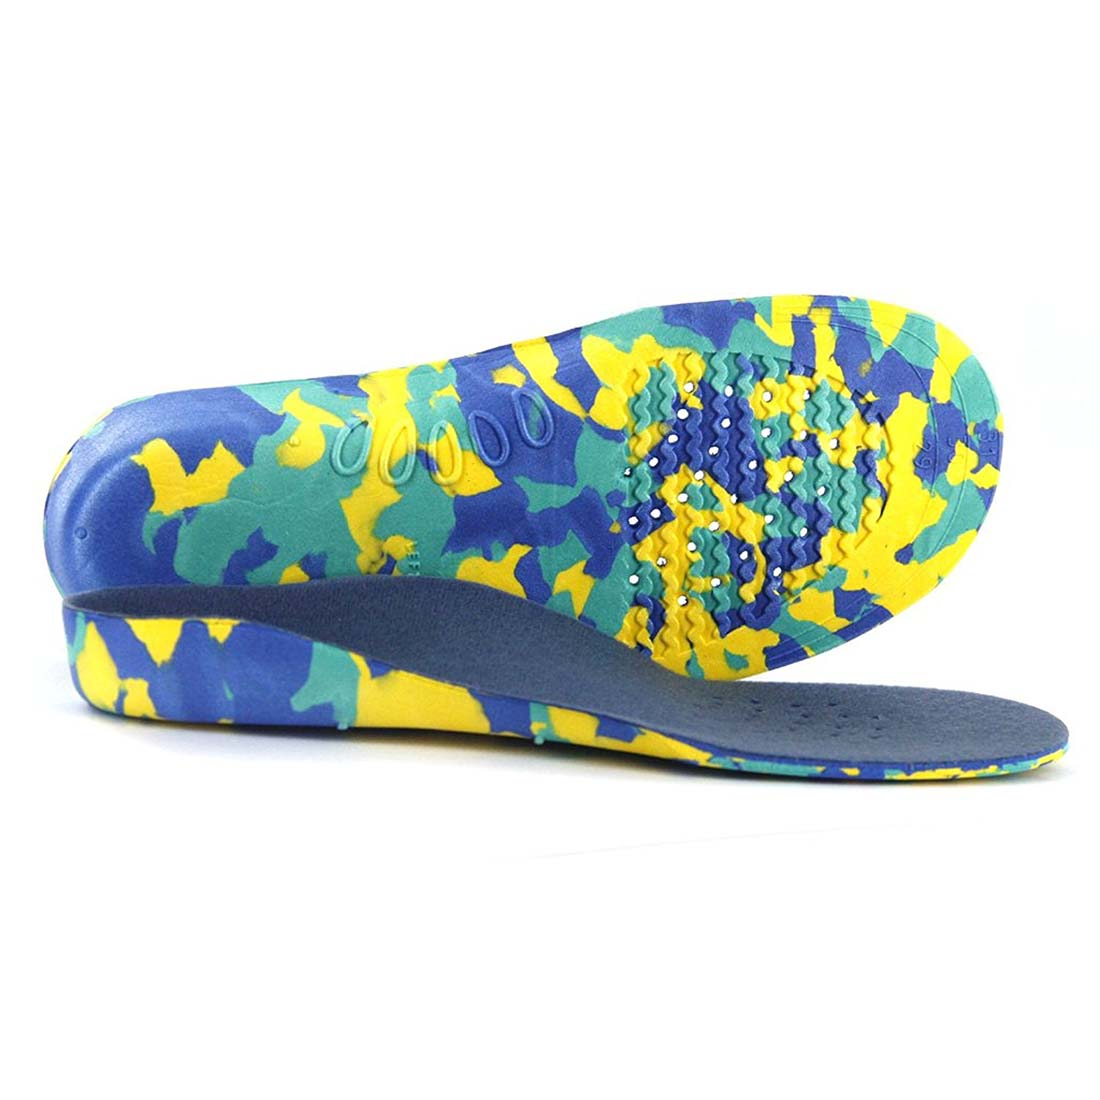 1 Pair Orthopedic insole arch Support Pads for Kids (L) commercial sea inflatable blue water slide with pool and arch for kids